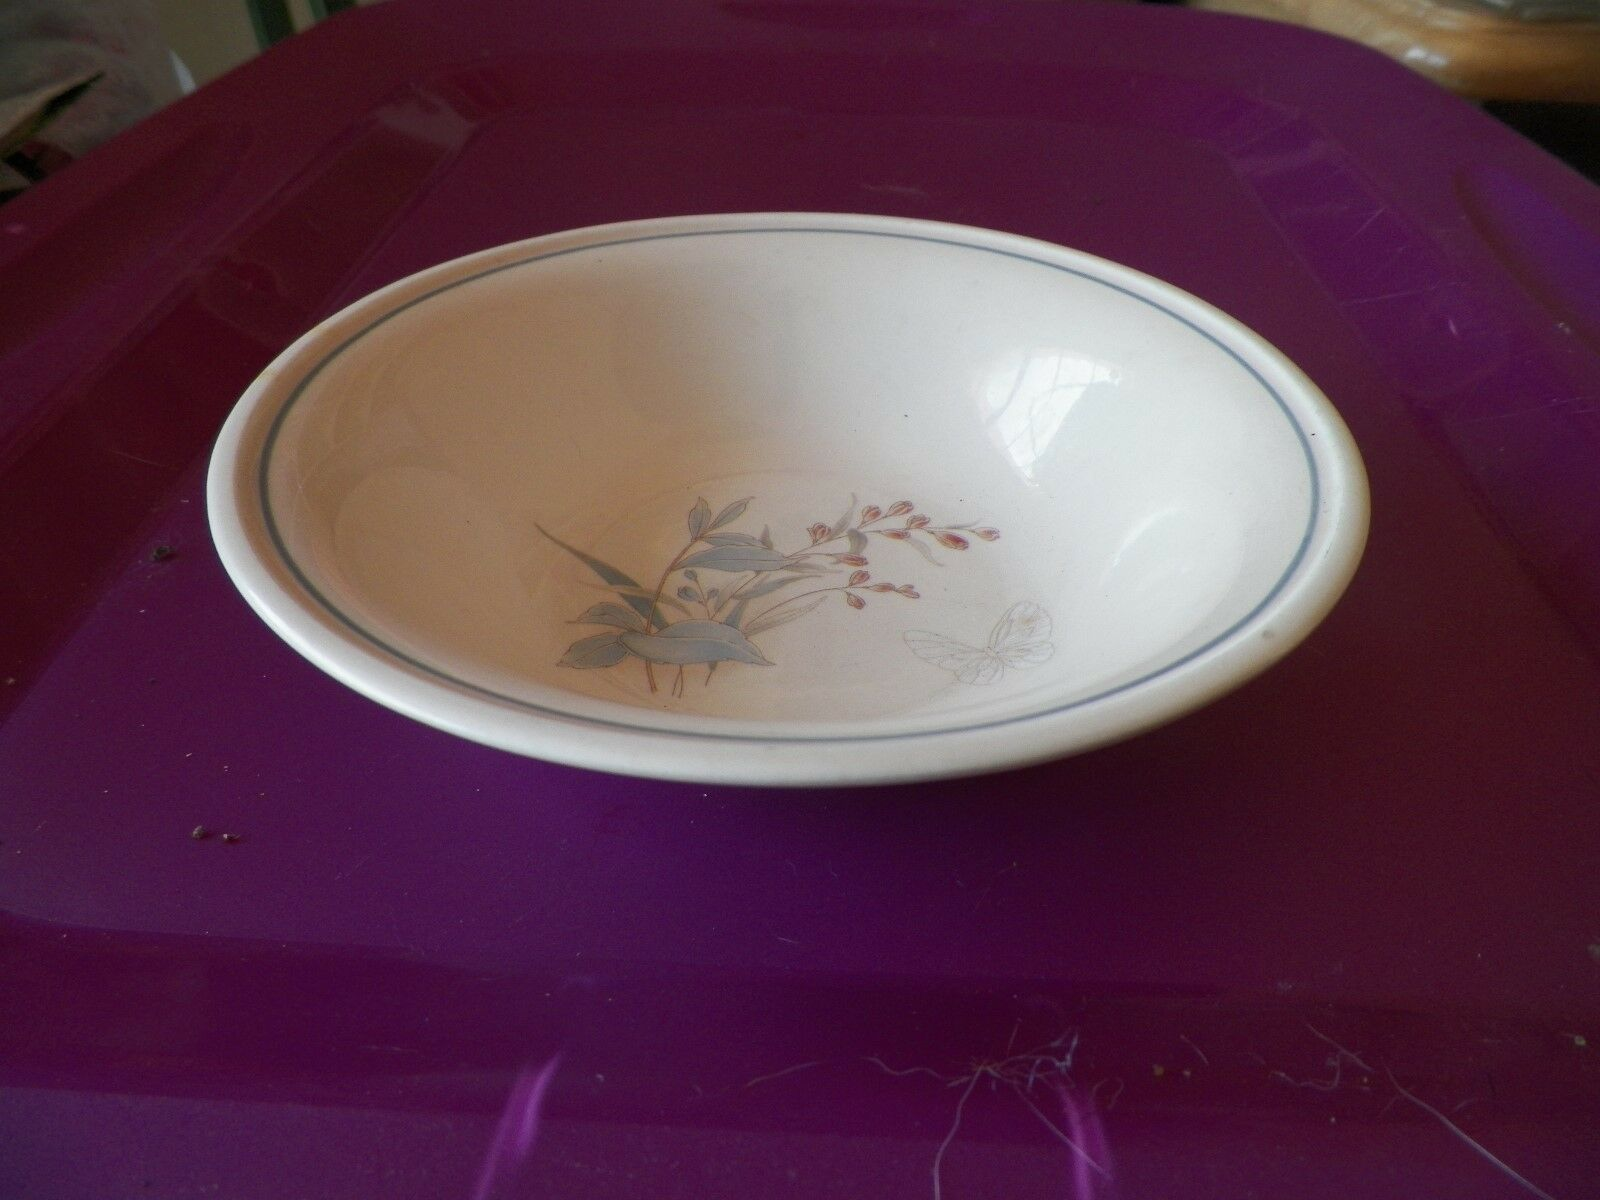 Noritake Kilkee cereal bowl 1 available - $5.49